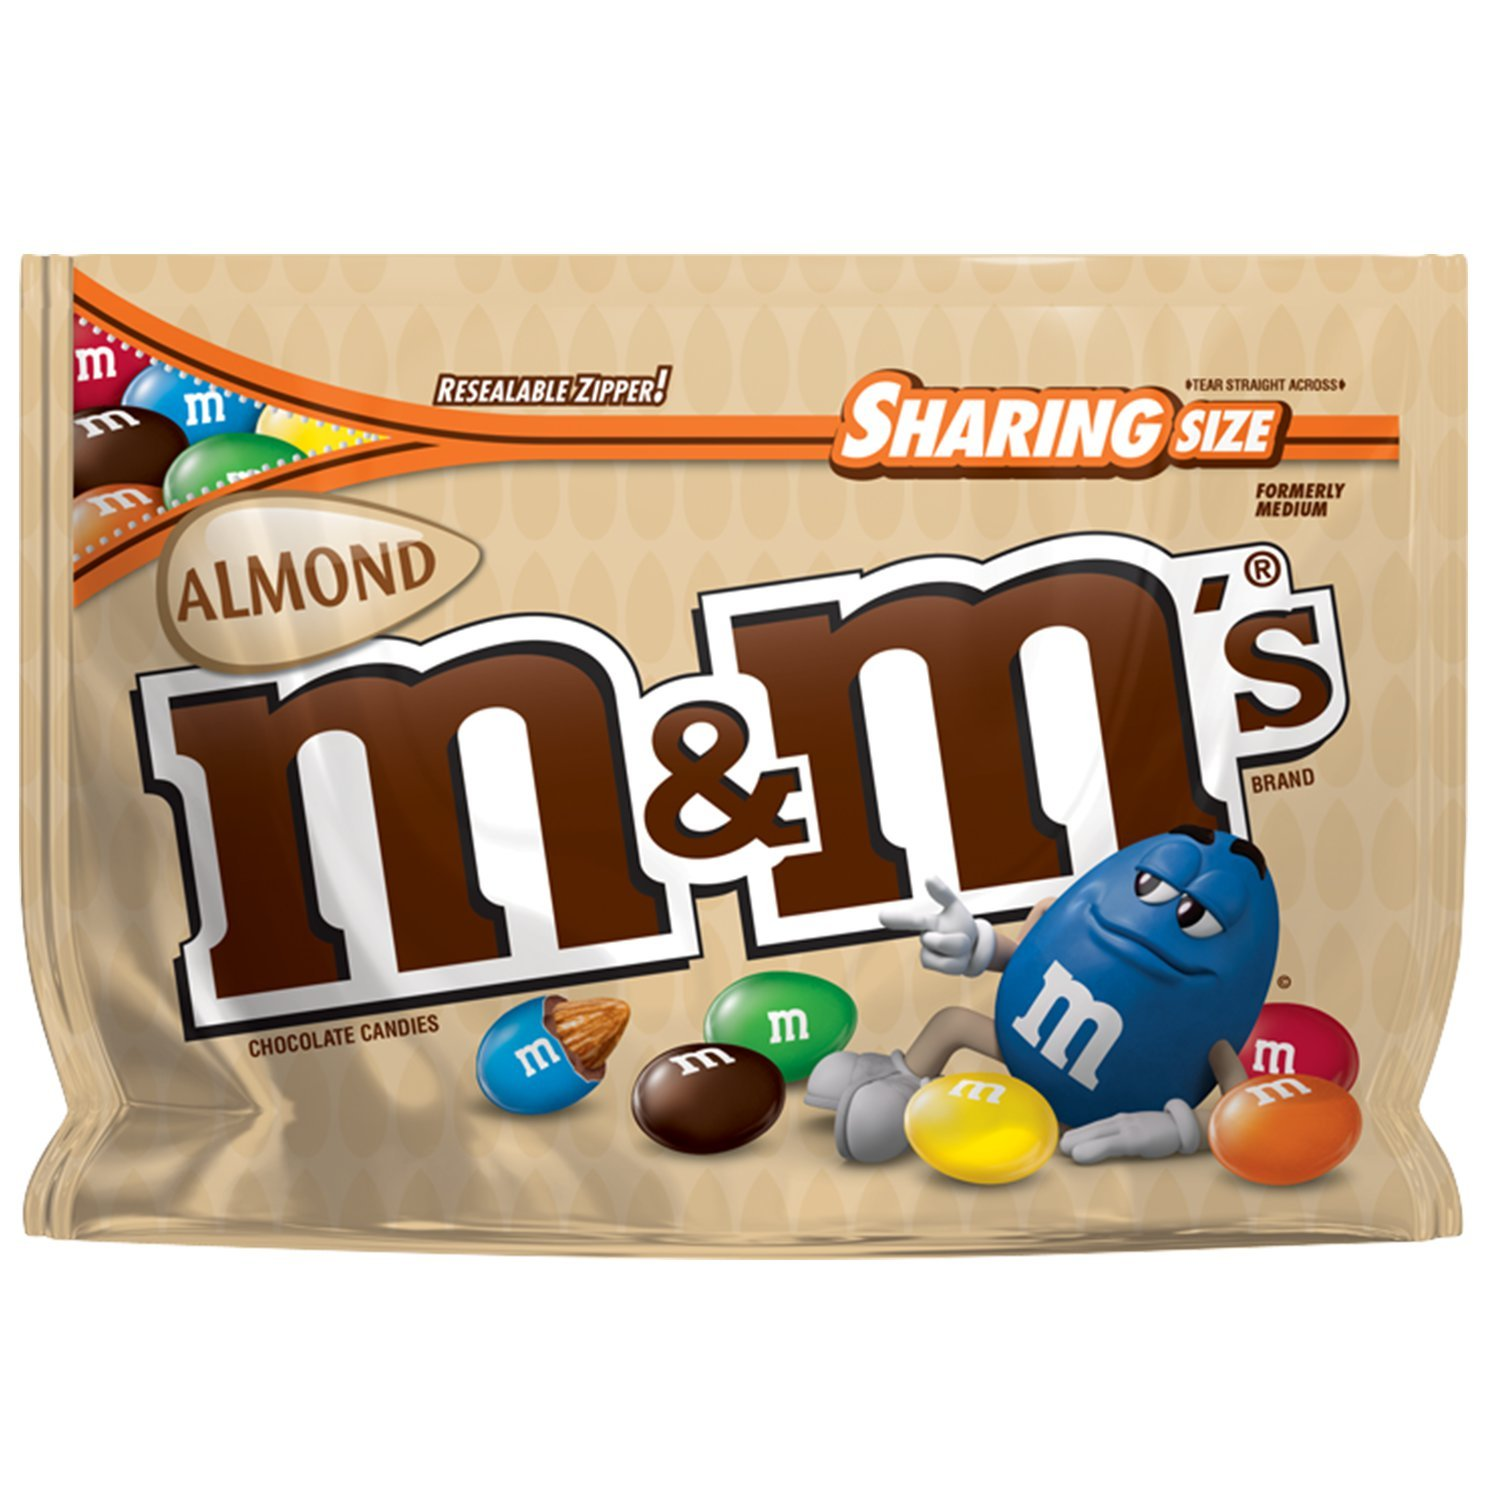 M&M'S Almond Chocolate Candy Sharing Size 9.3-Ounce Bag (Pack of 8)